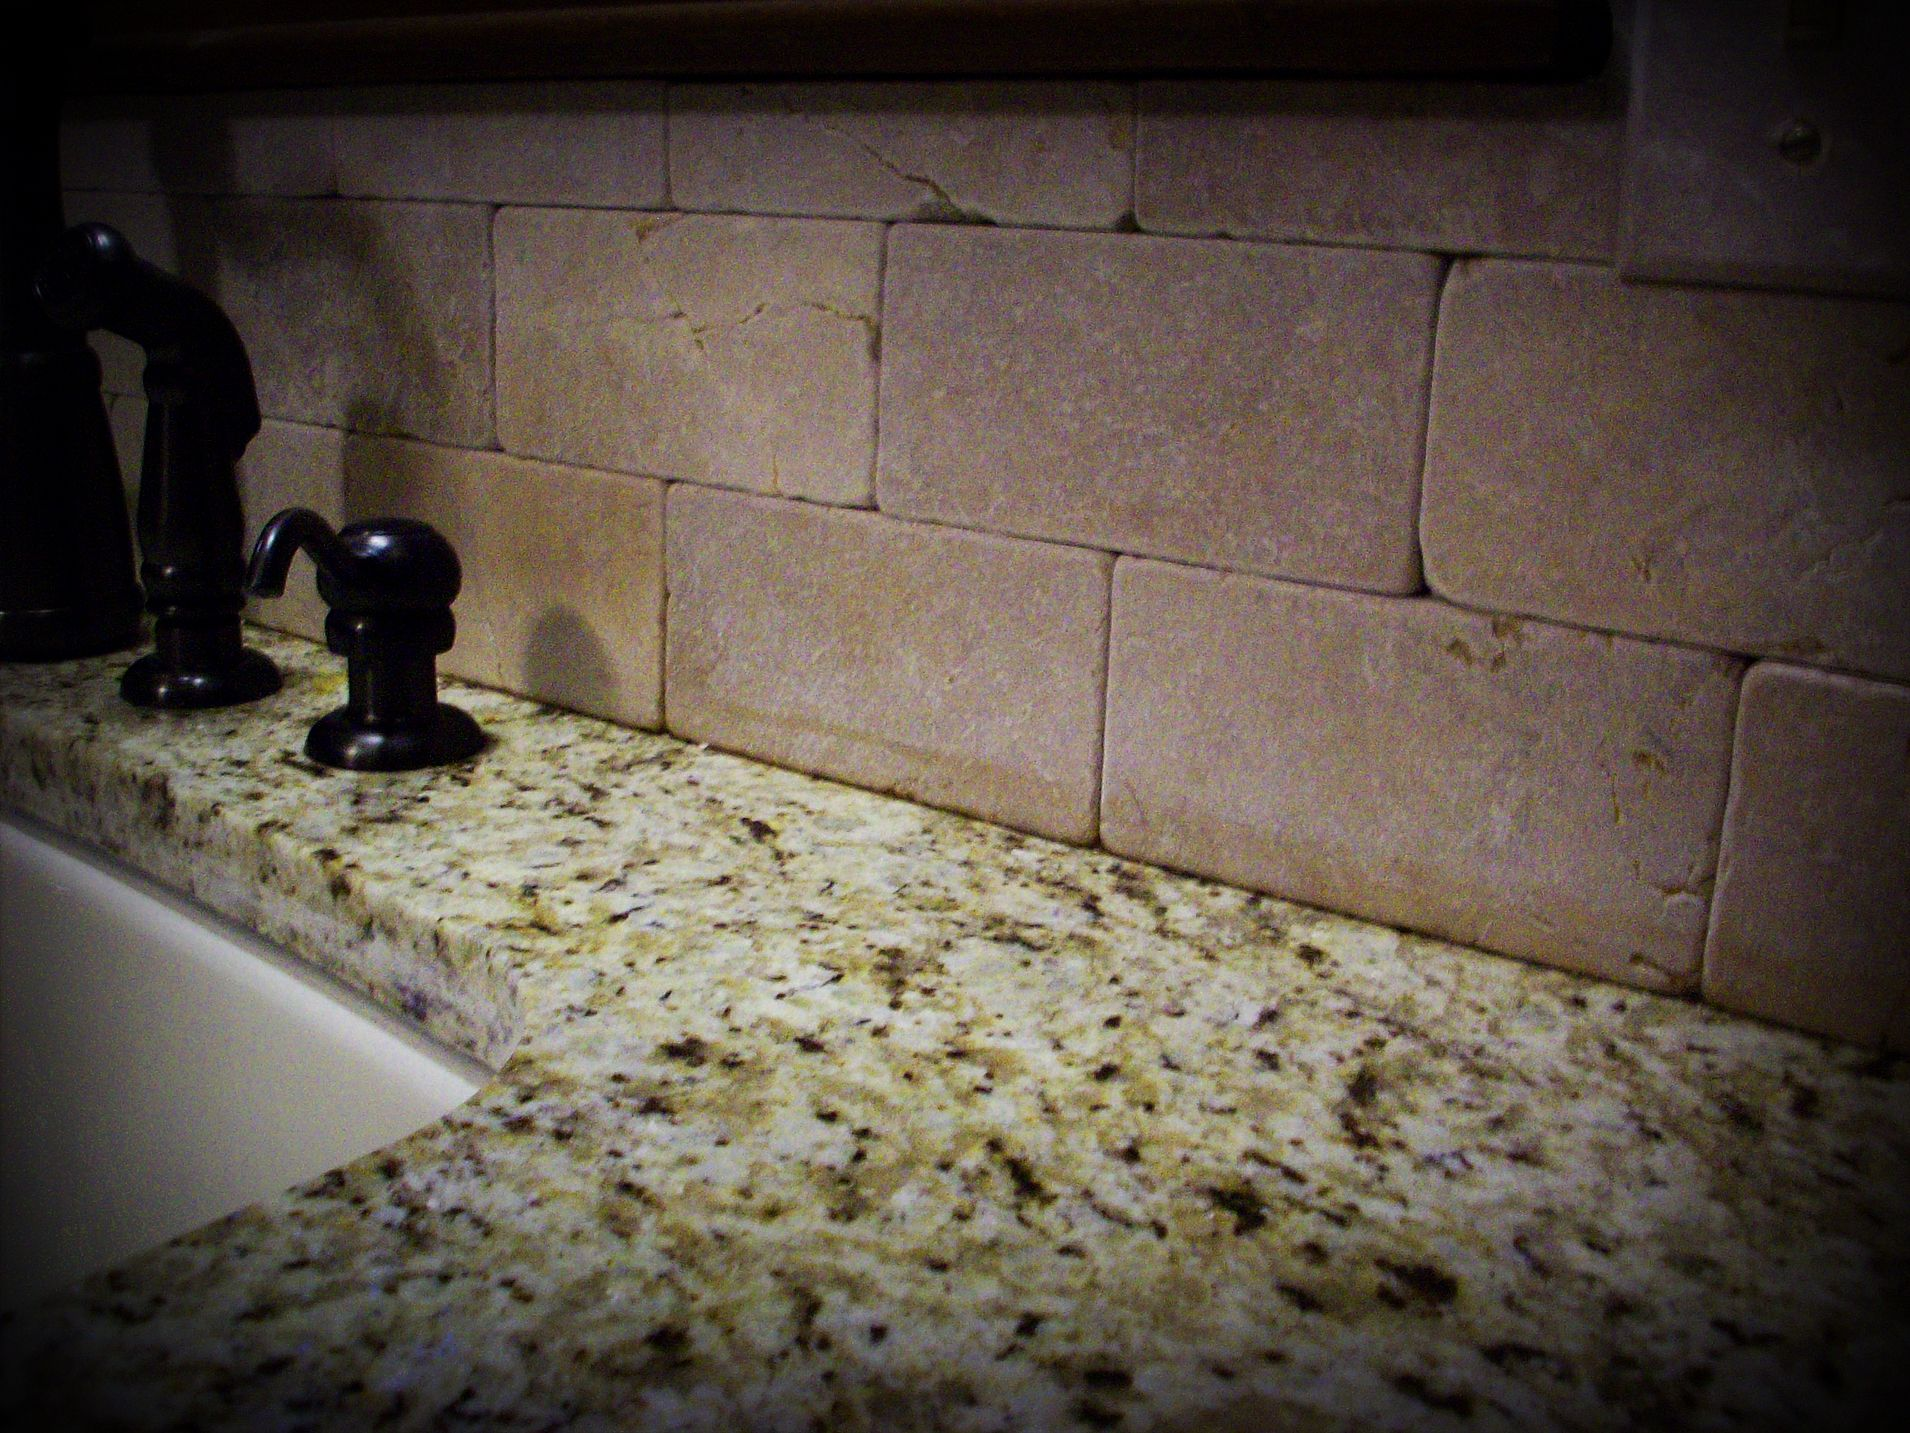 Floor tile without grout lines images tile flooring design ideas stacked without grout spaces then add grout to fill cracks stacked without grout spaces then add dailygadgetfo Gallery